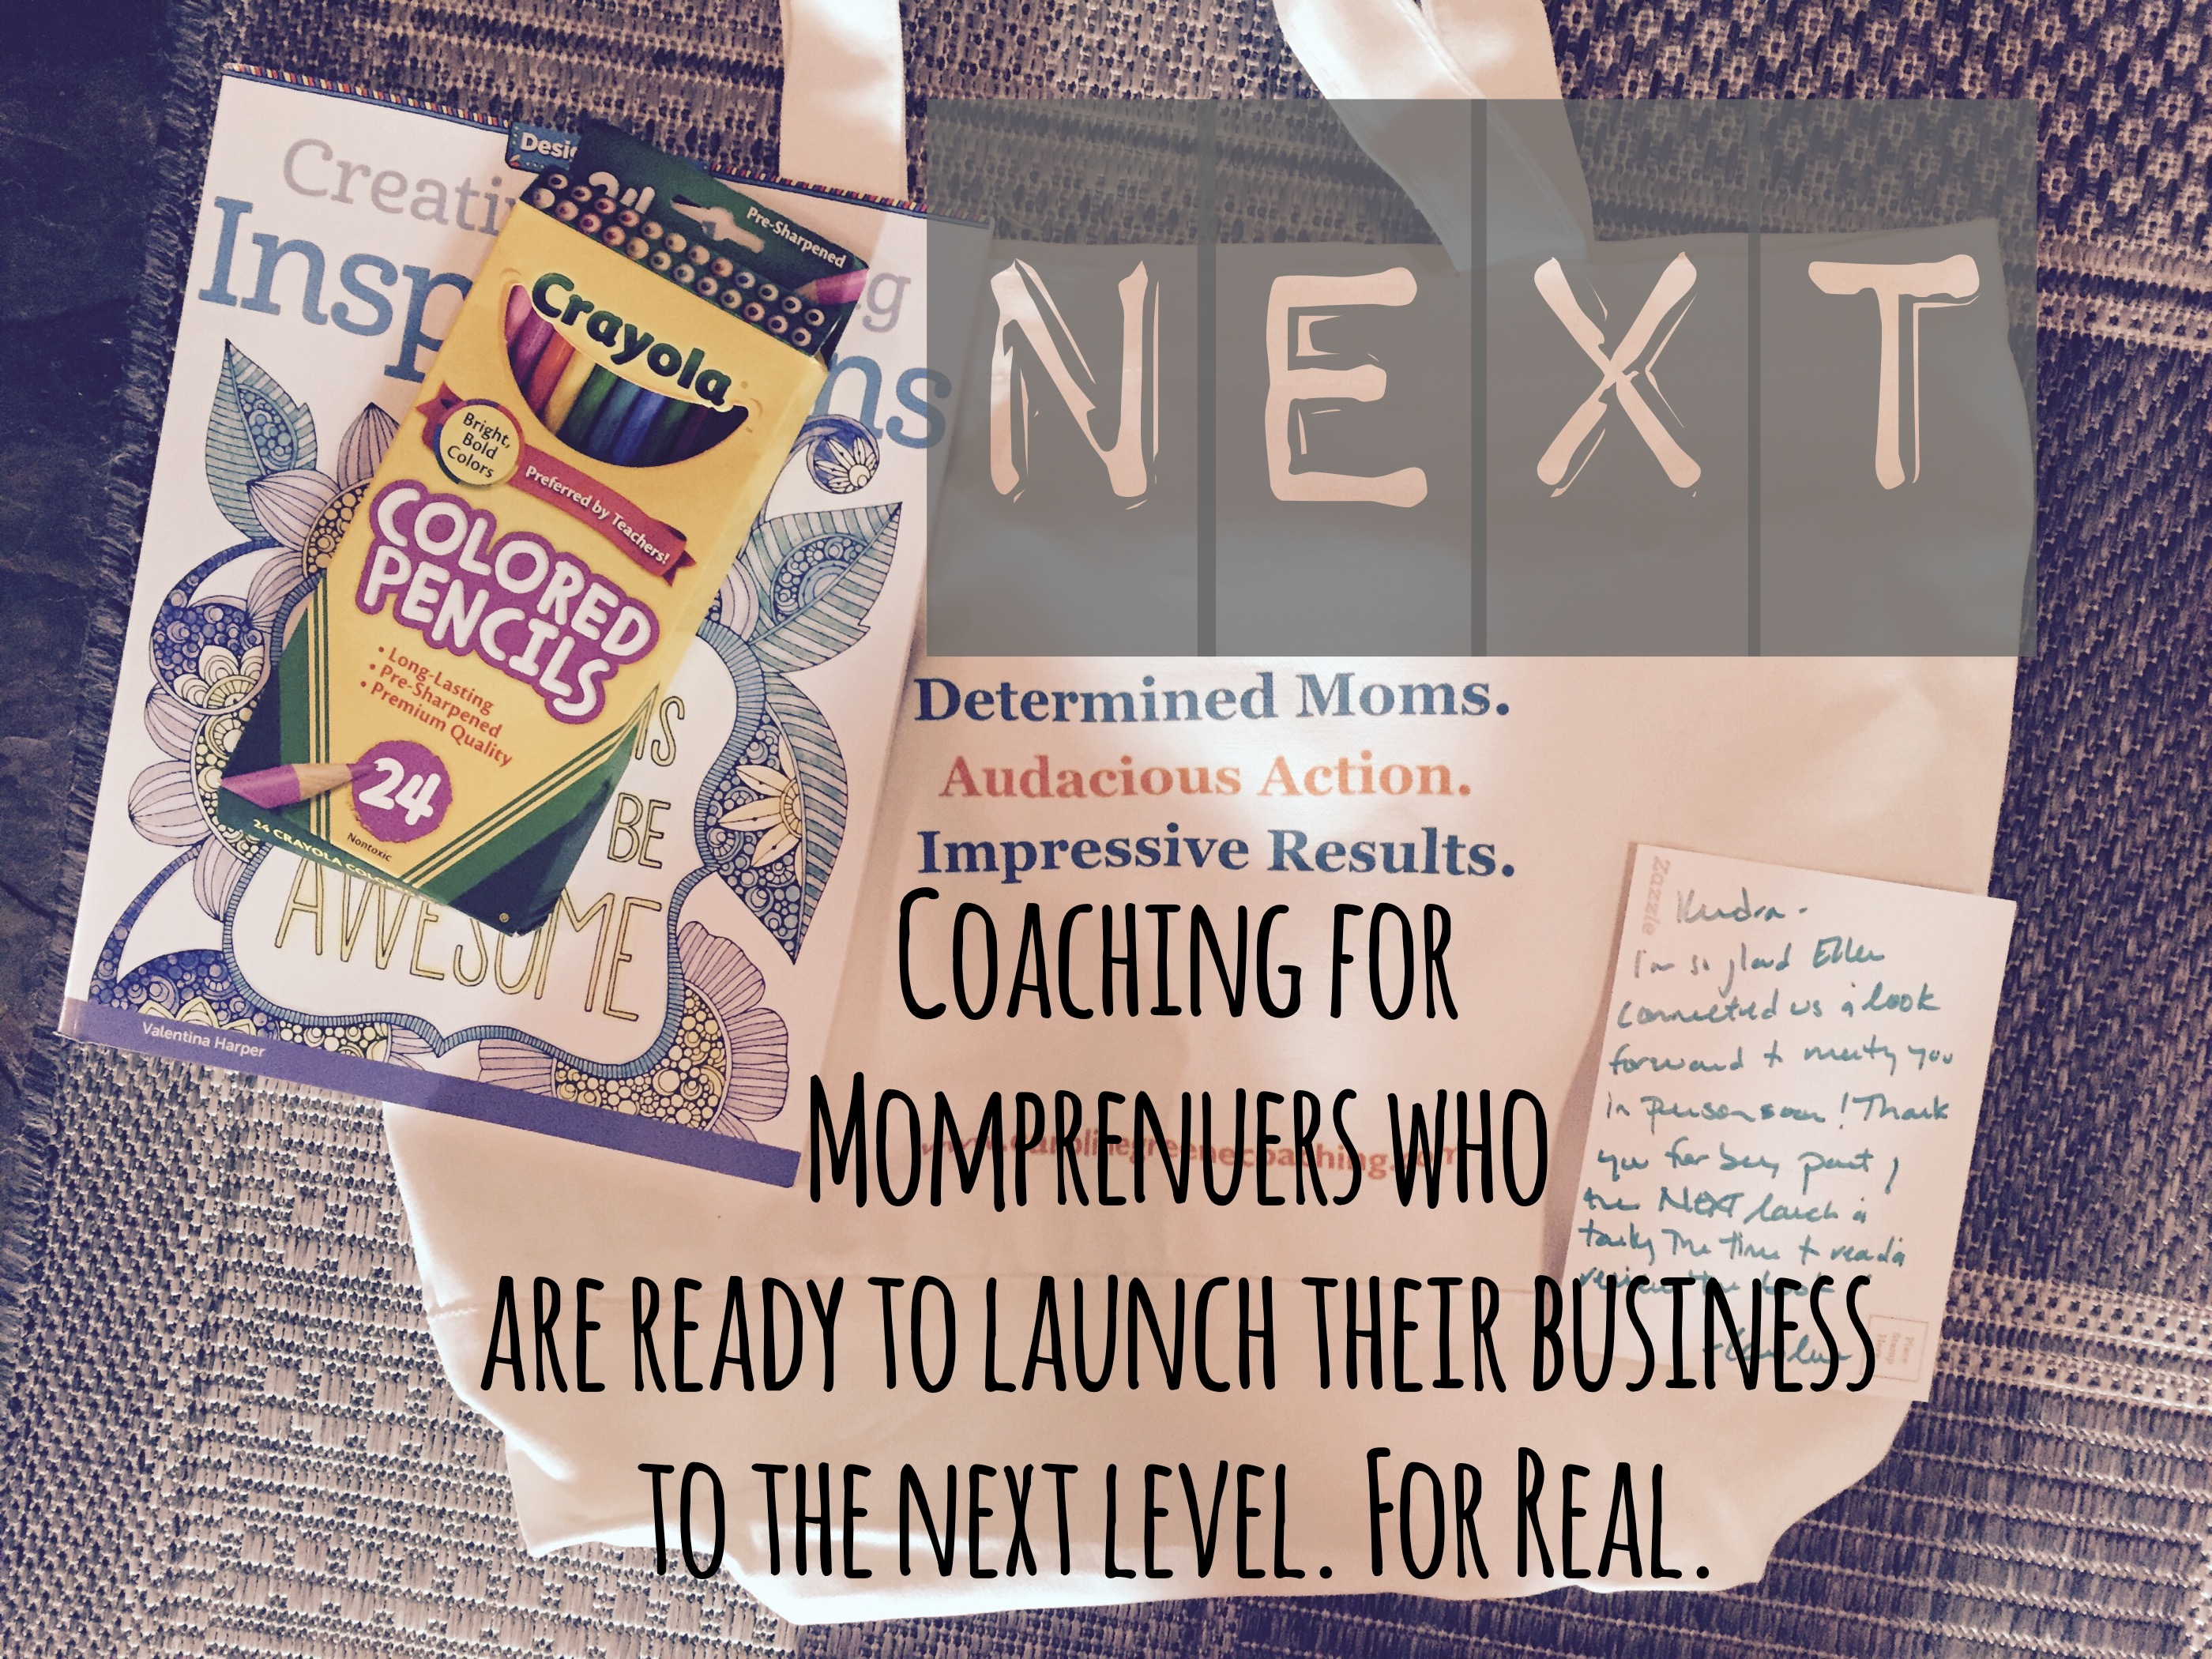 Next – Coaching for momprenuers who are ready to launch their business to the next level. For Real.